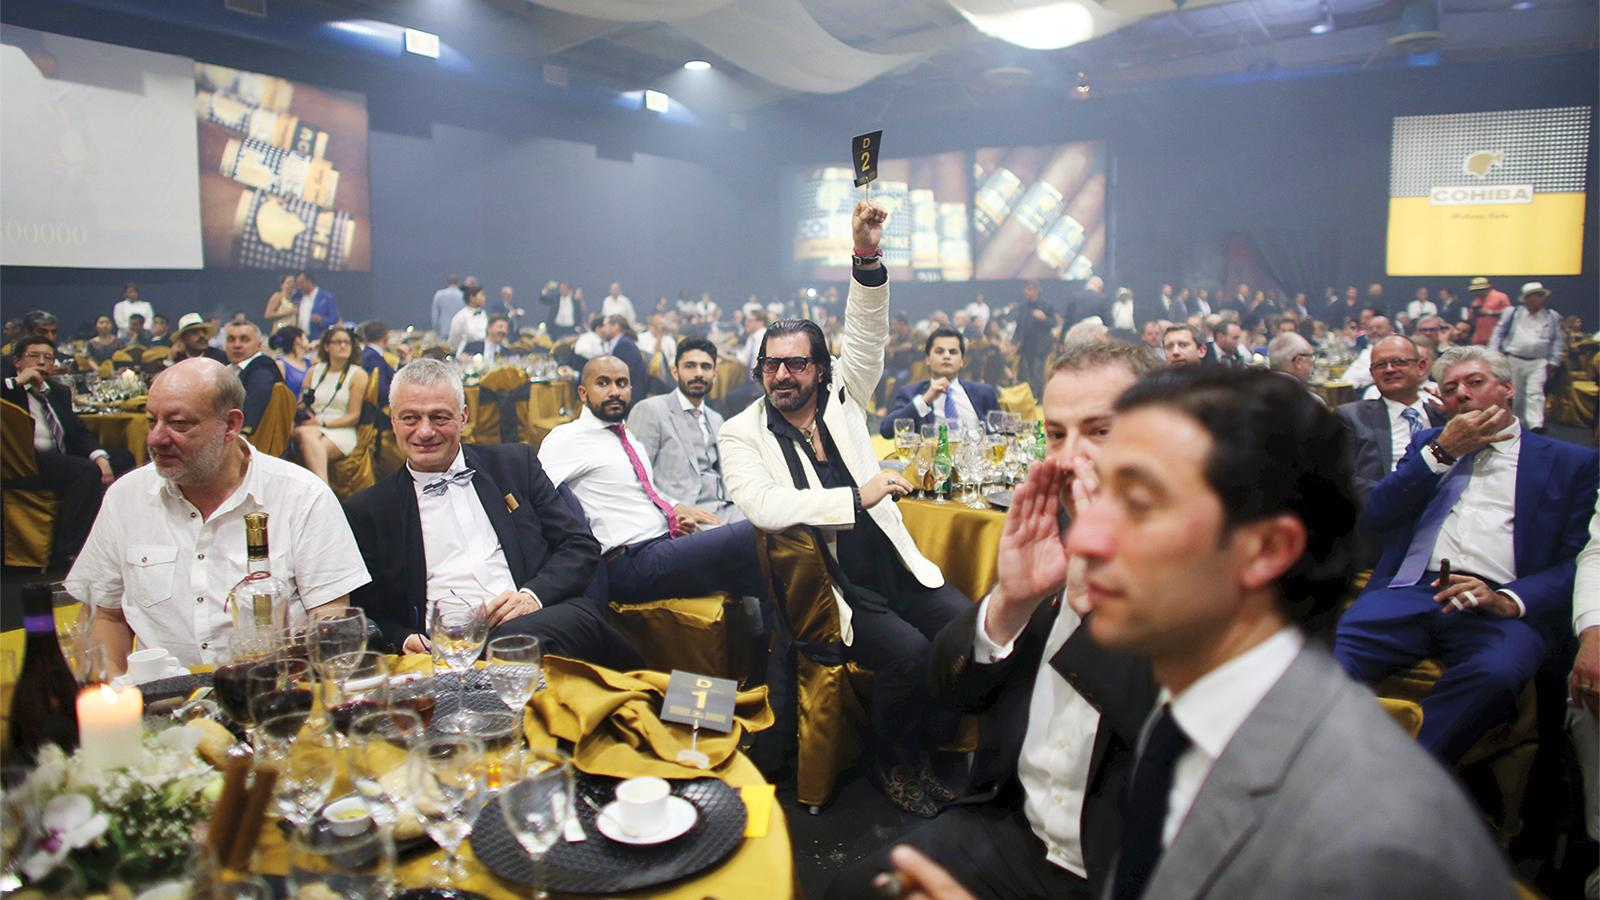 Reza Balouds from Iran (center) raises his bid for a limited-edition Cohiba humidor during an auction at the gala dinner of the XVIII Habanos Festival.